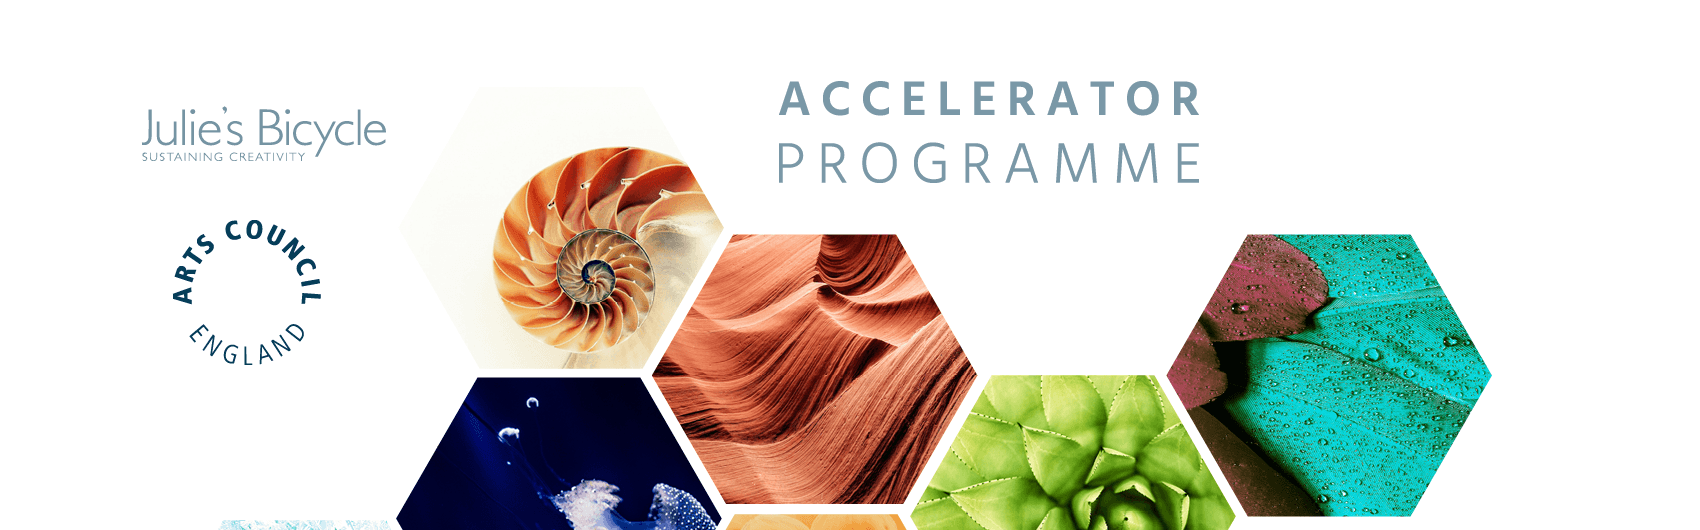 Julie's Bicycle Accelerator Programme